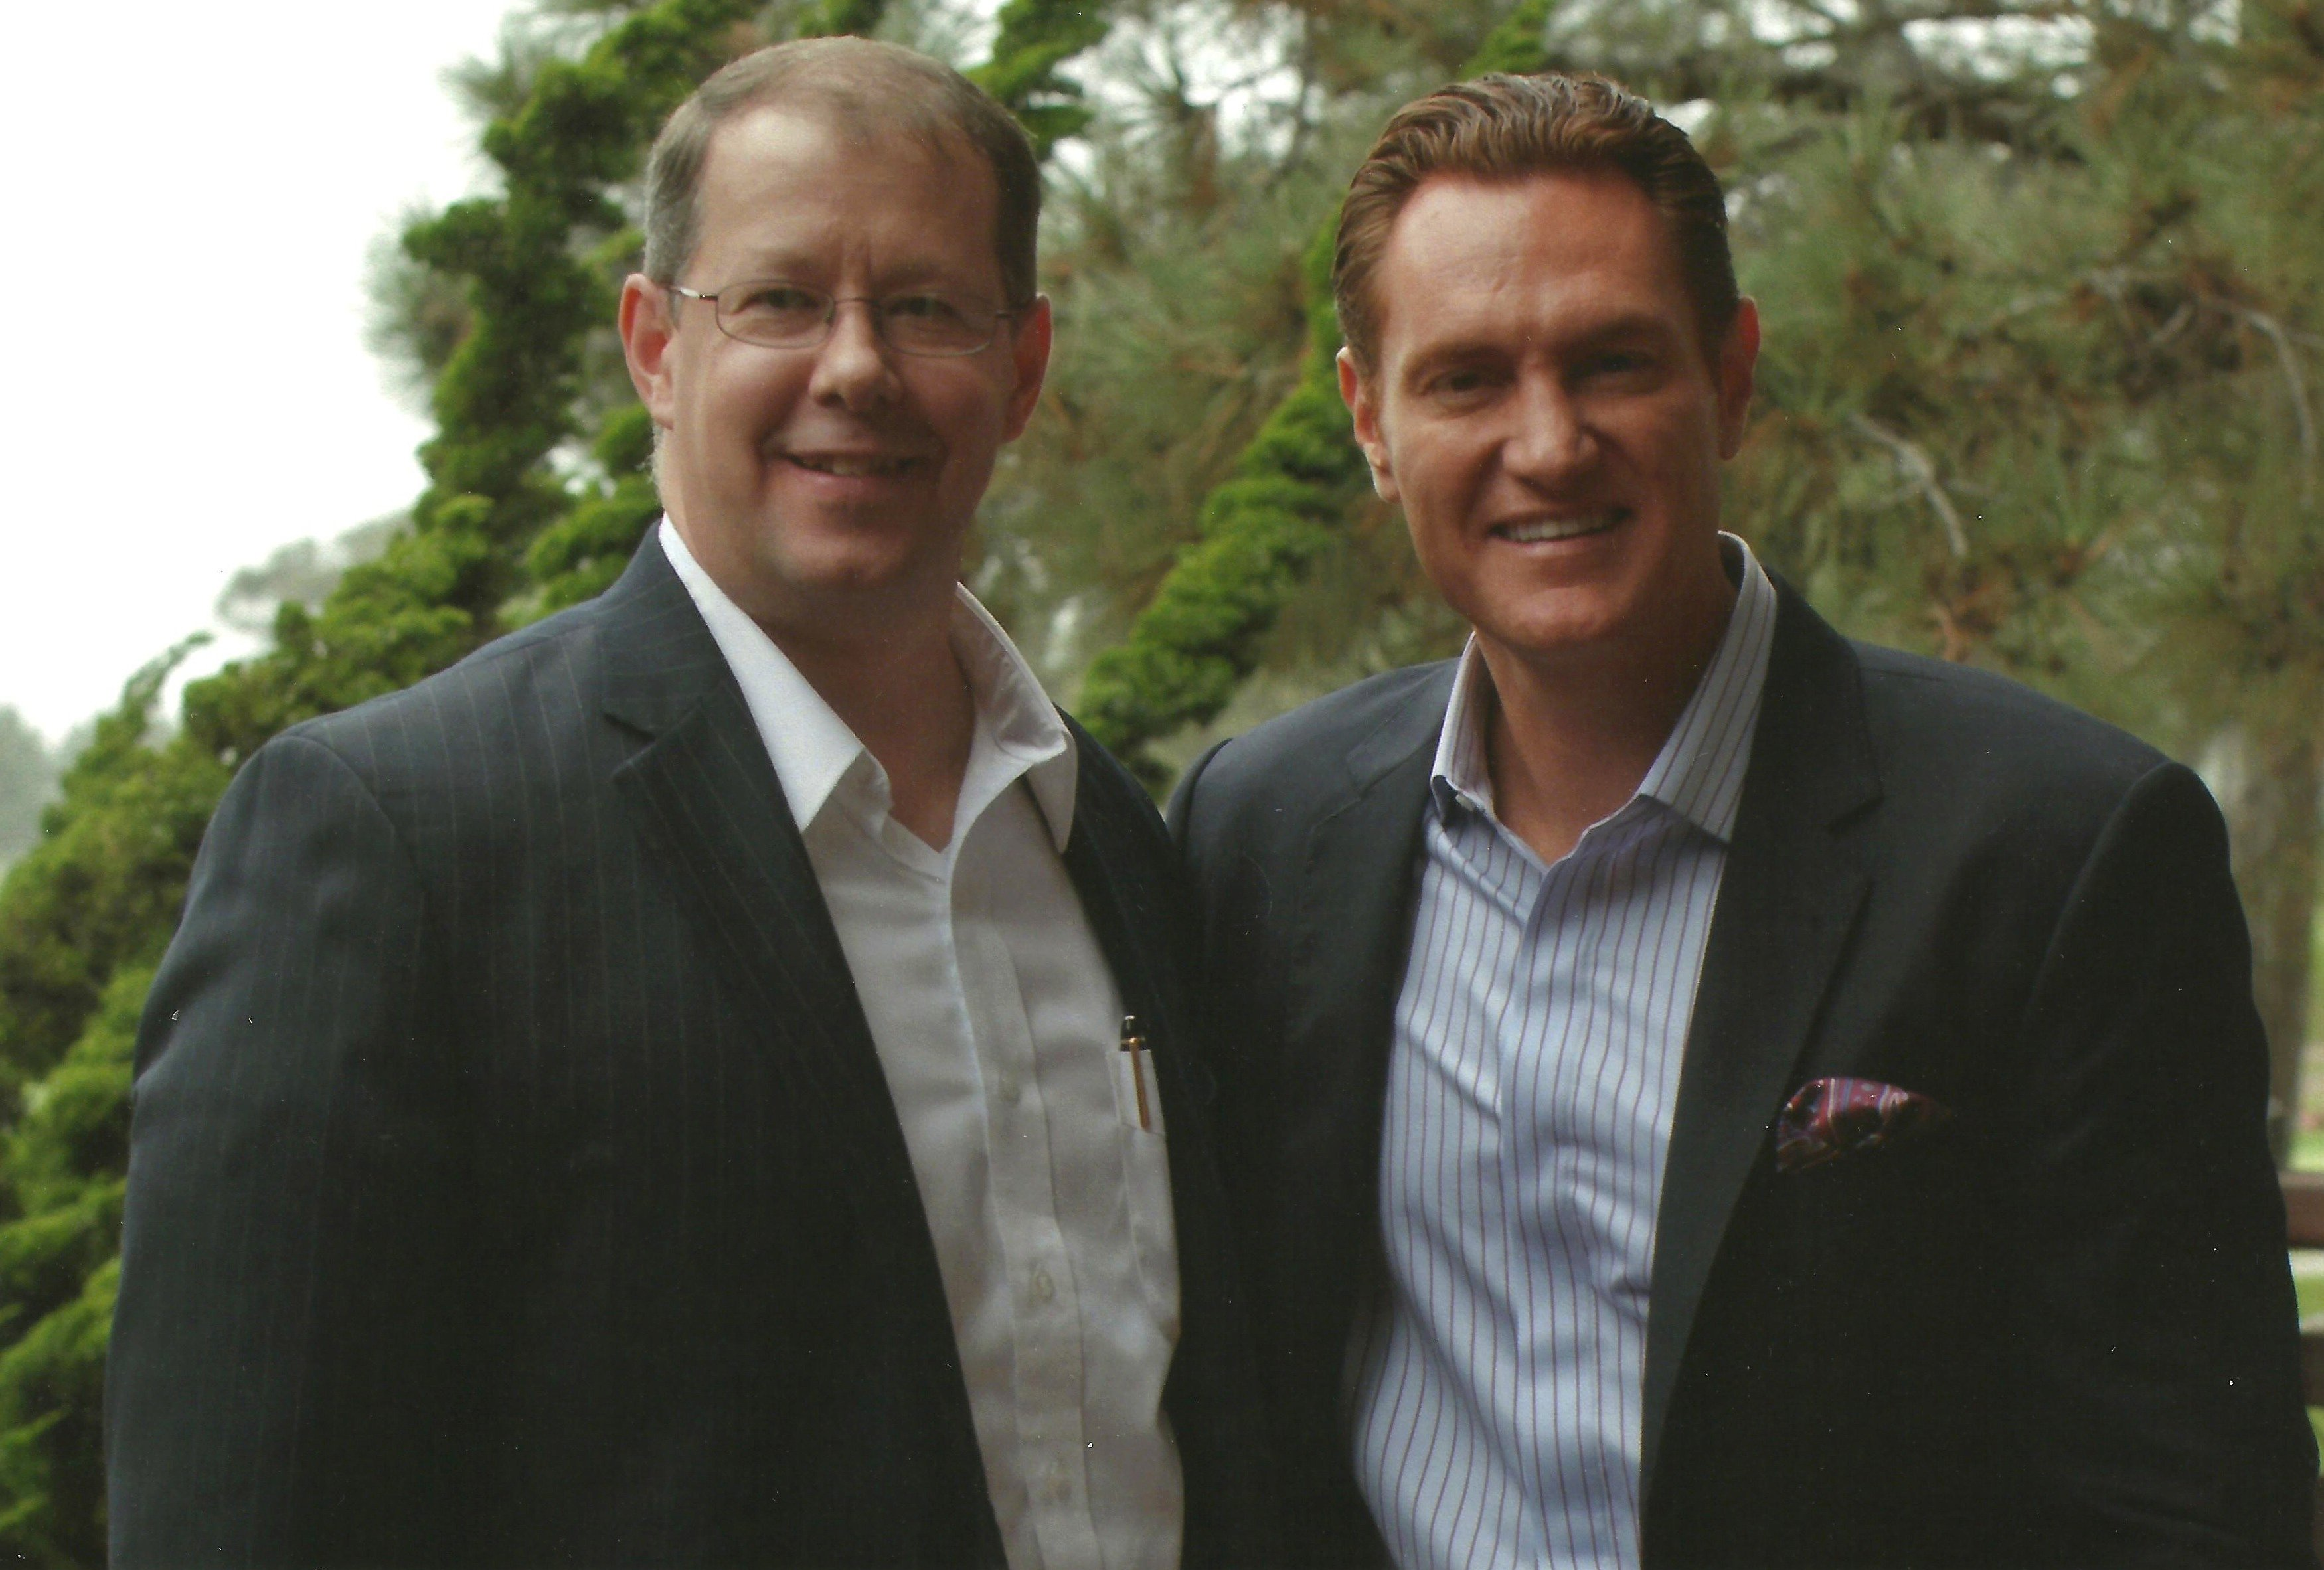 Stephen Woessner with Darren Hardy, August 2012